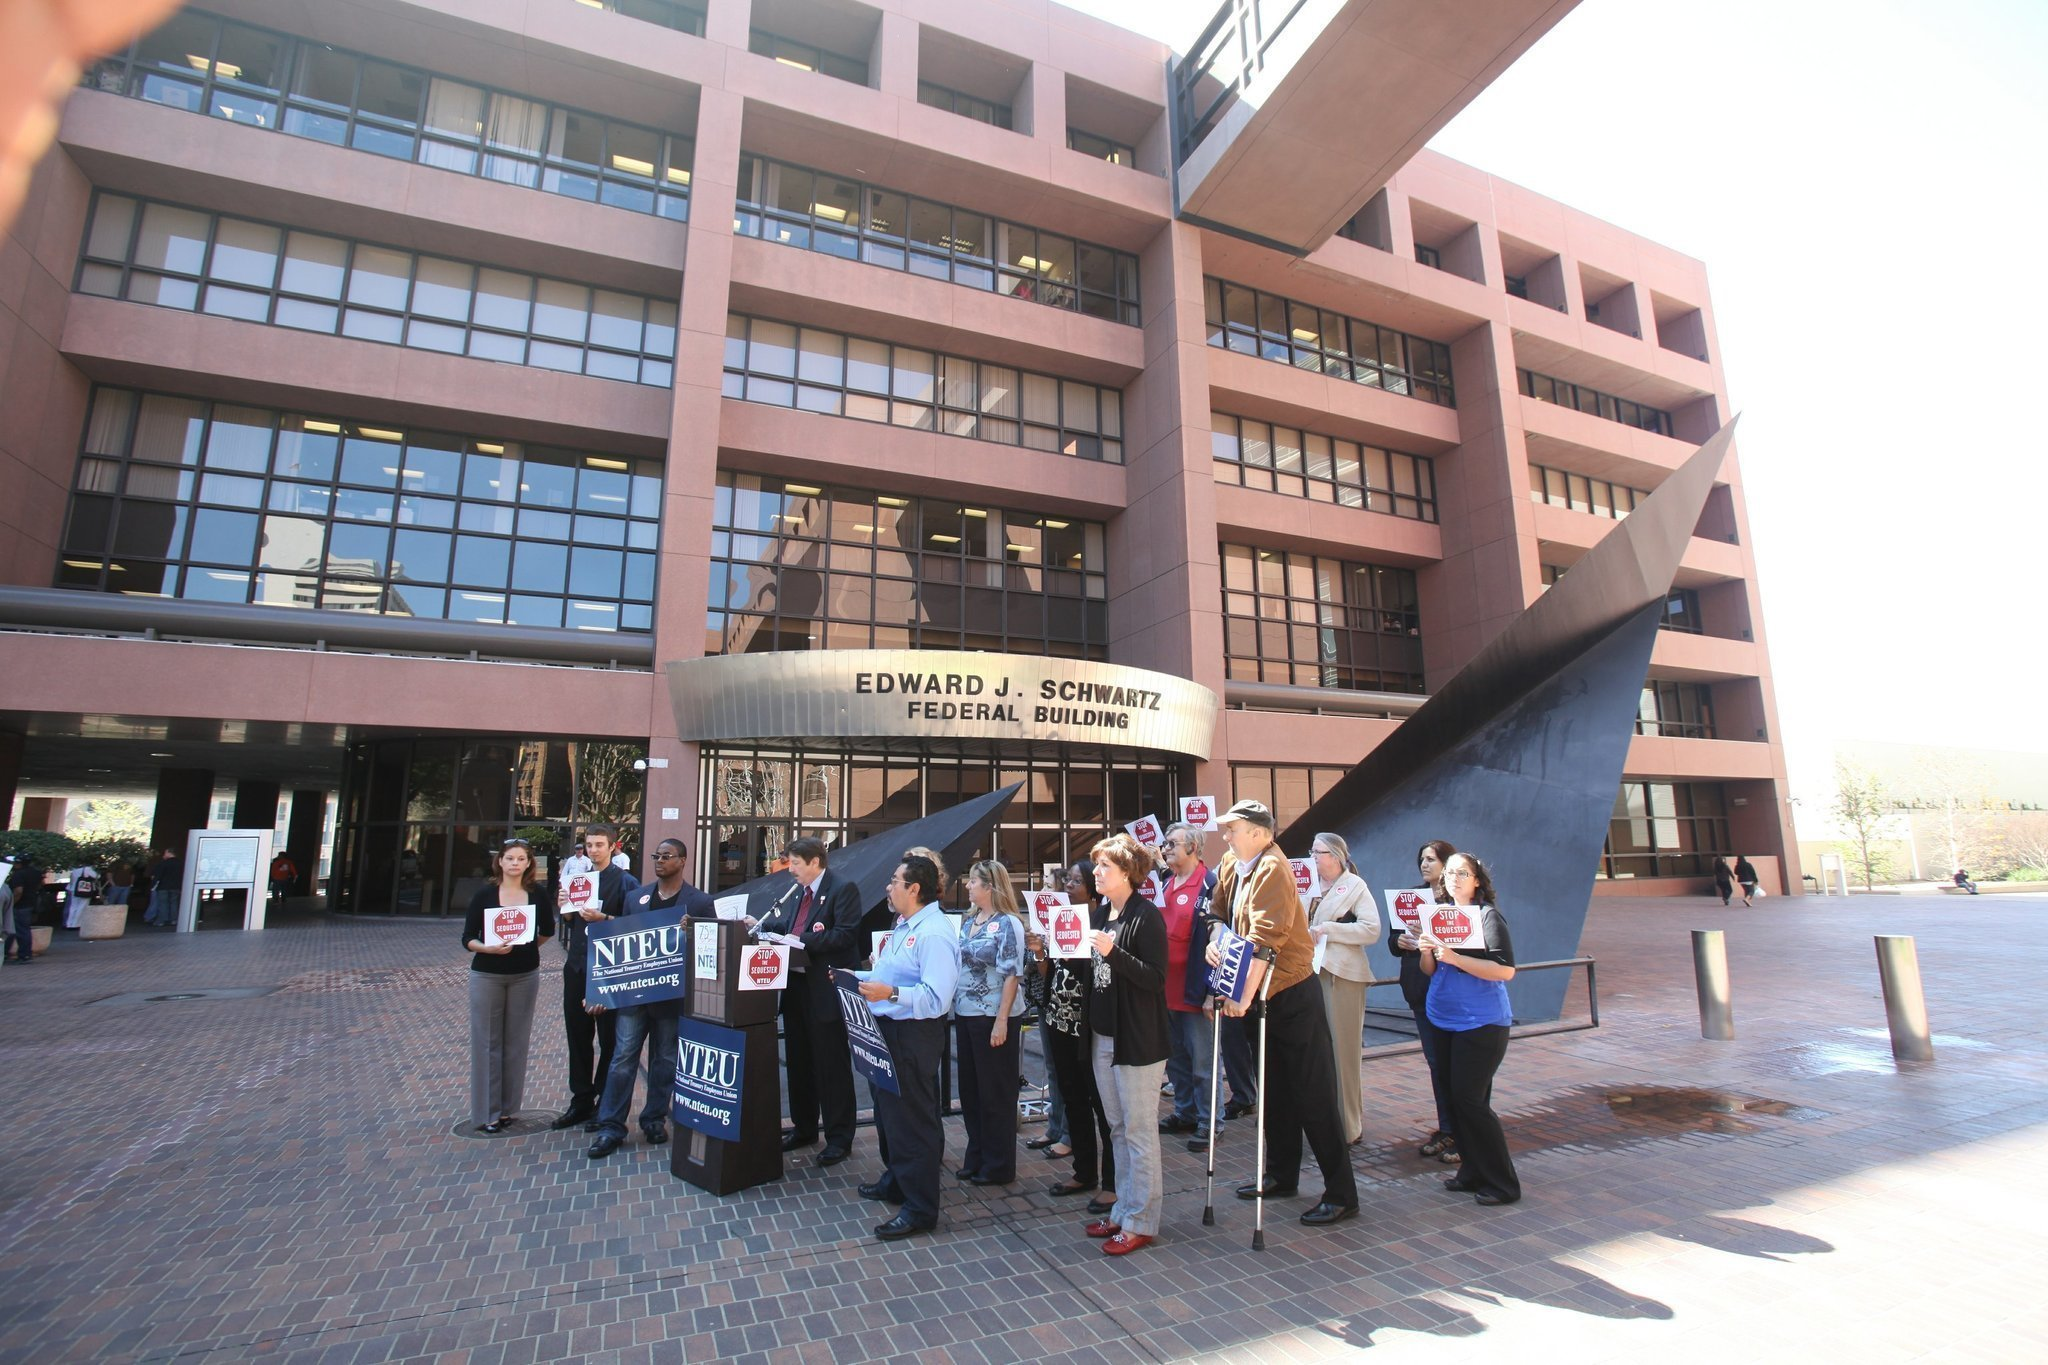 Shuttered IRS Could Complicate Life For Some   The San Diego Union Tribune